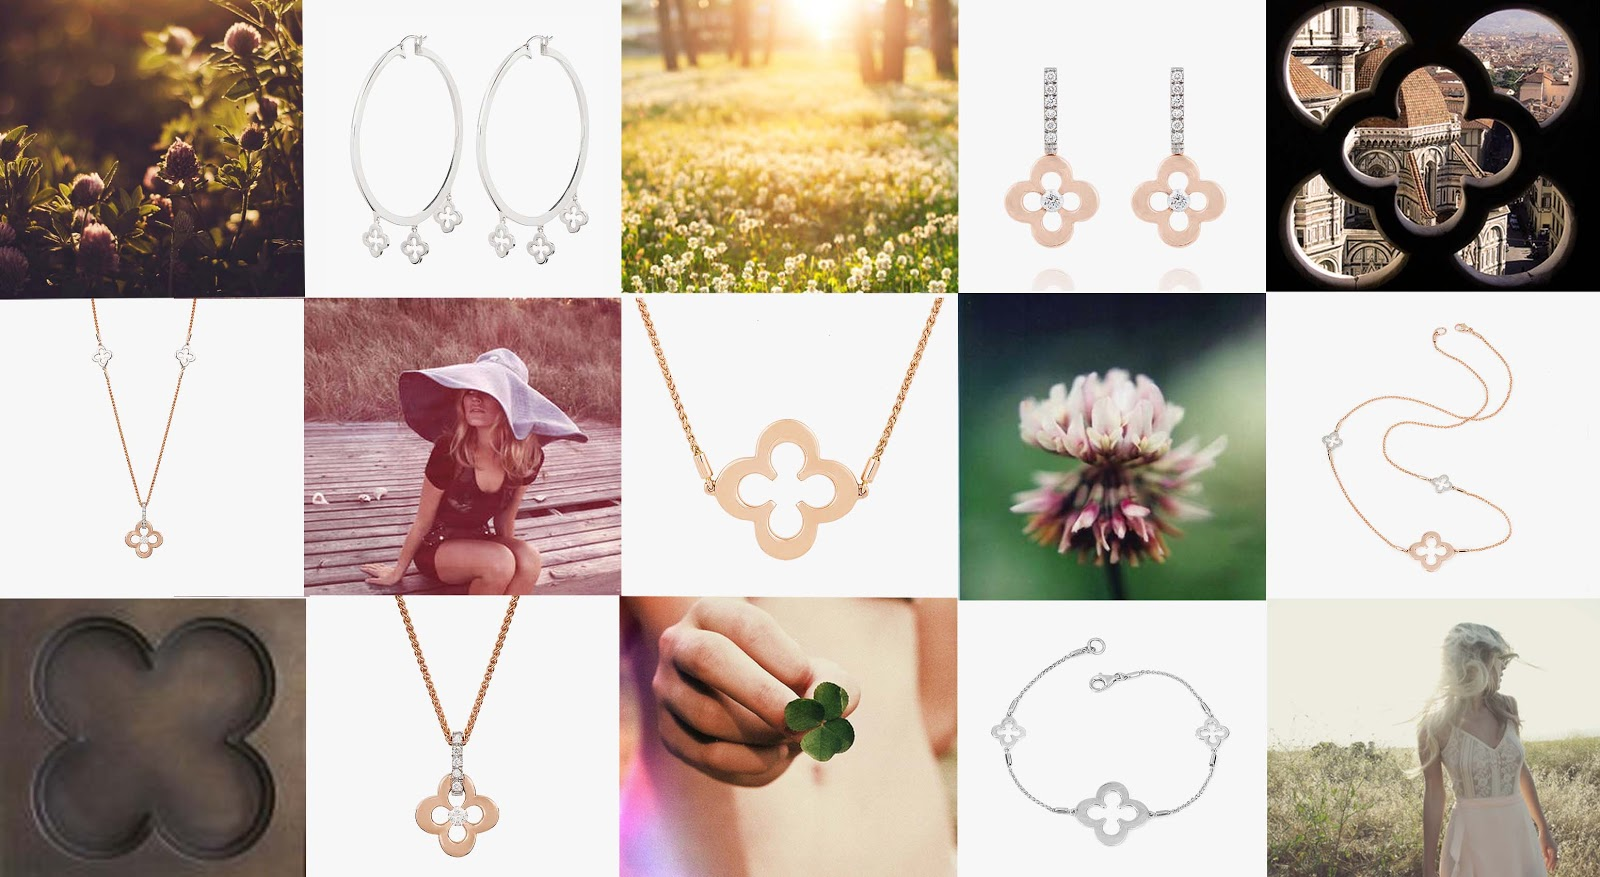 2d80f05b0 I have picked my favourite elements of this beautiful range, inspired by  the iconic quatrefoil motif representing the rare four-leaf clover.